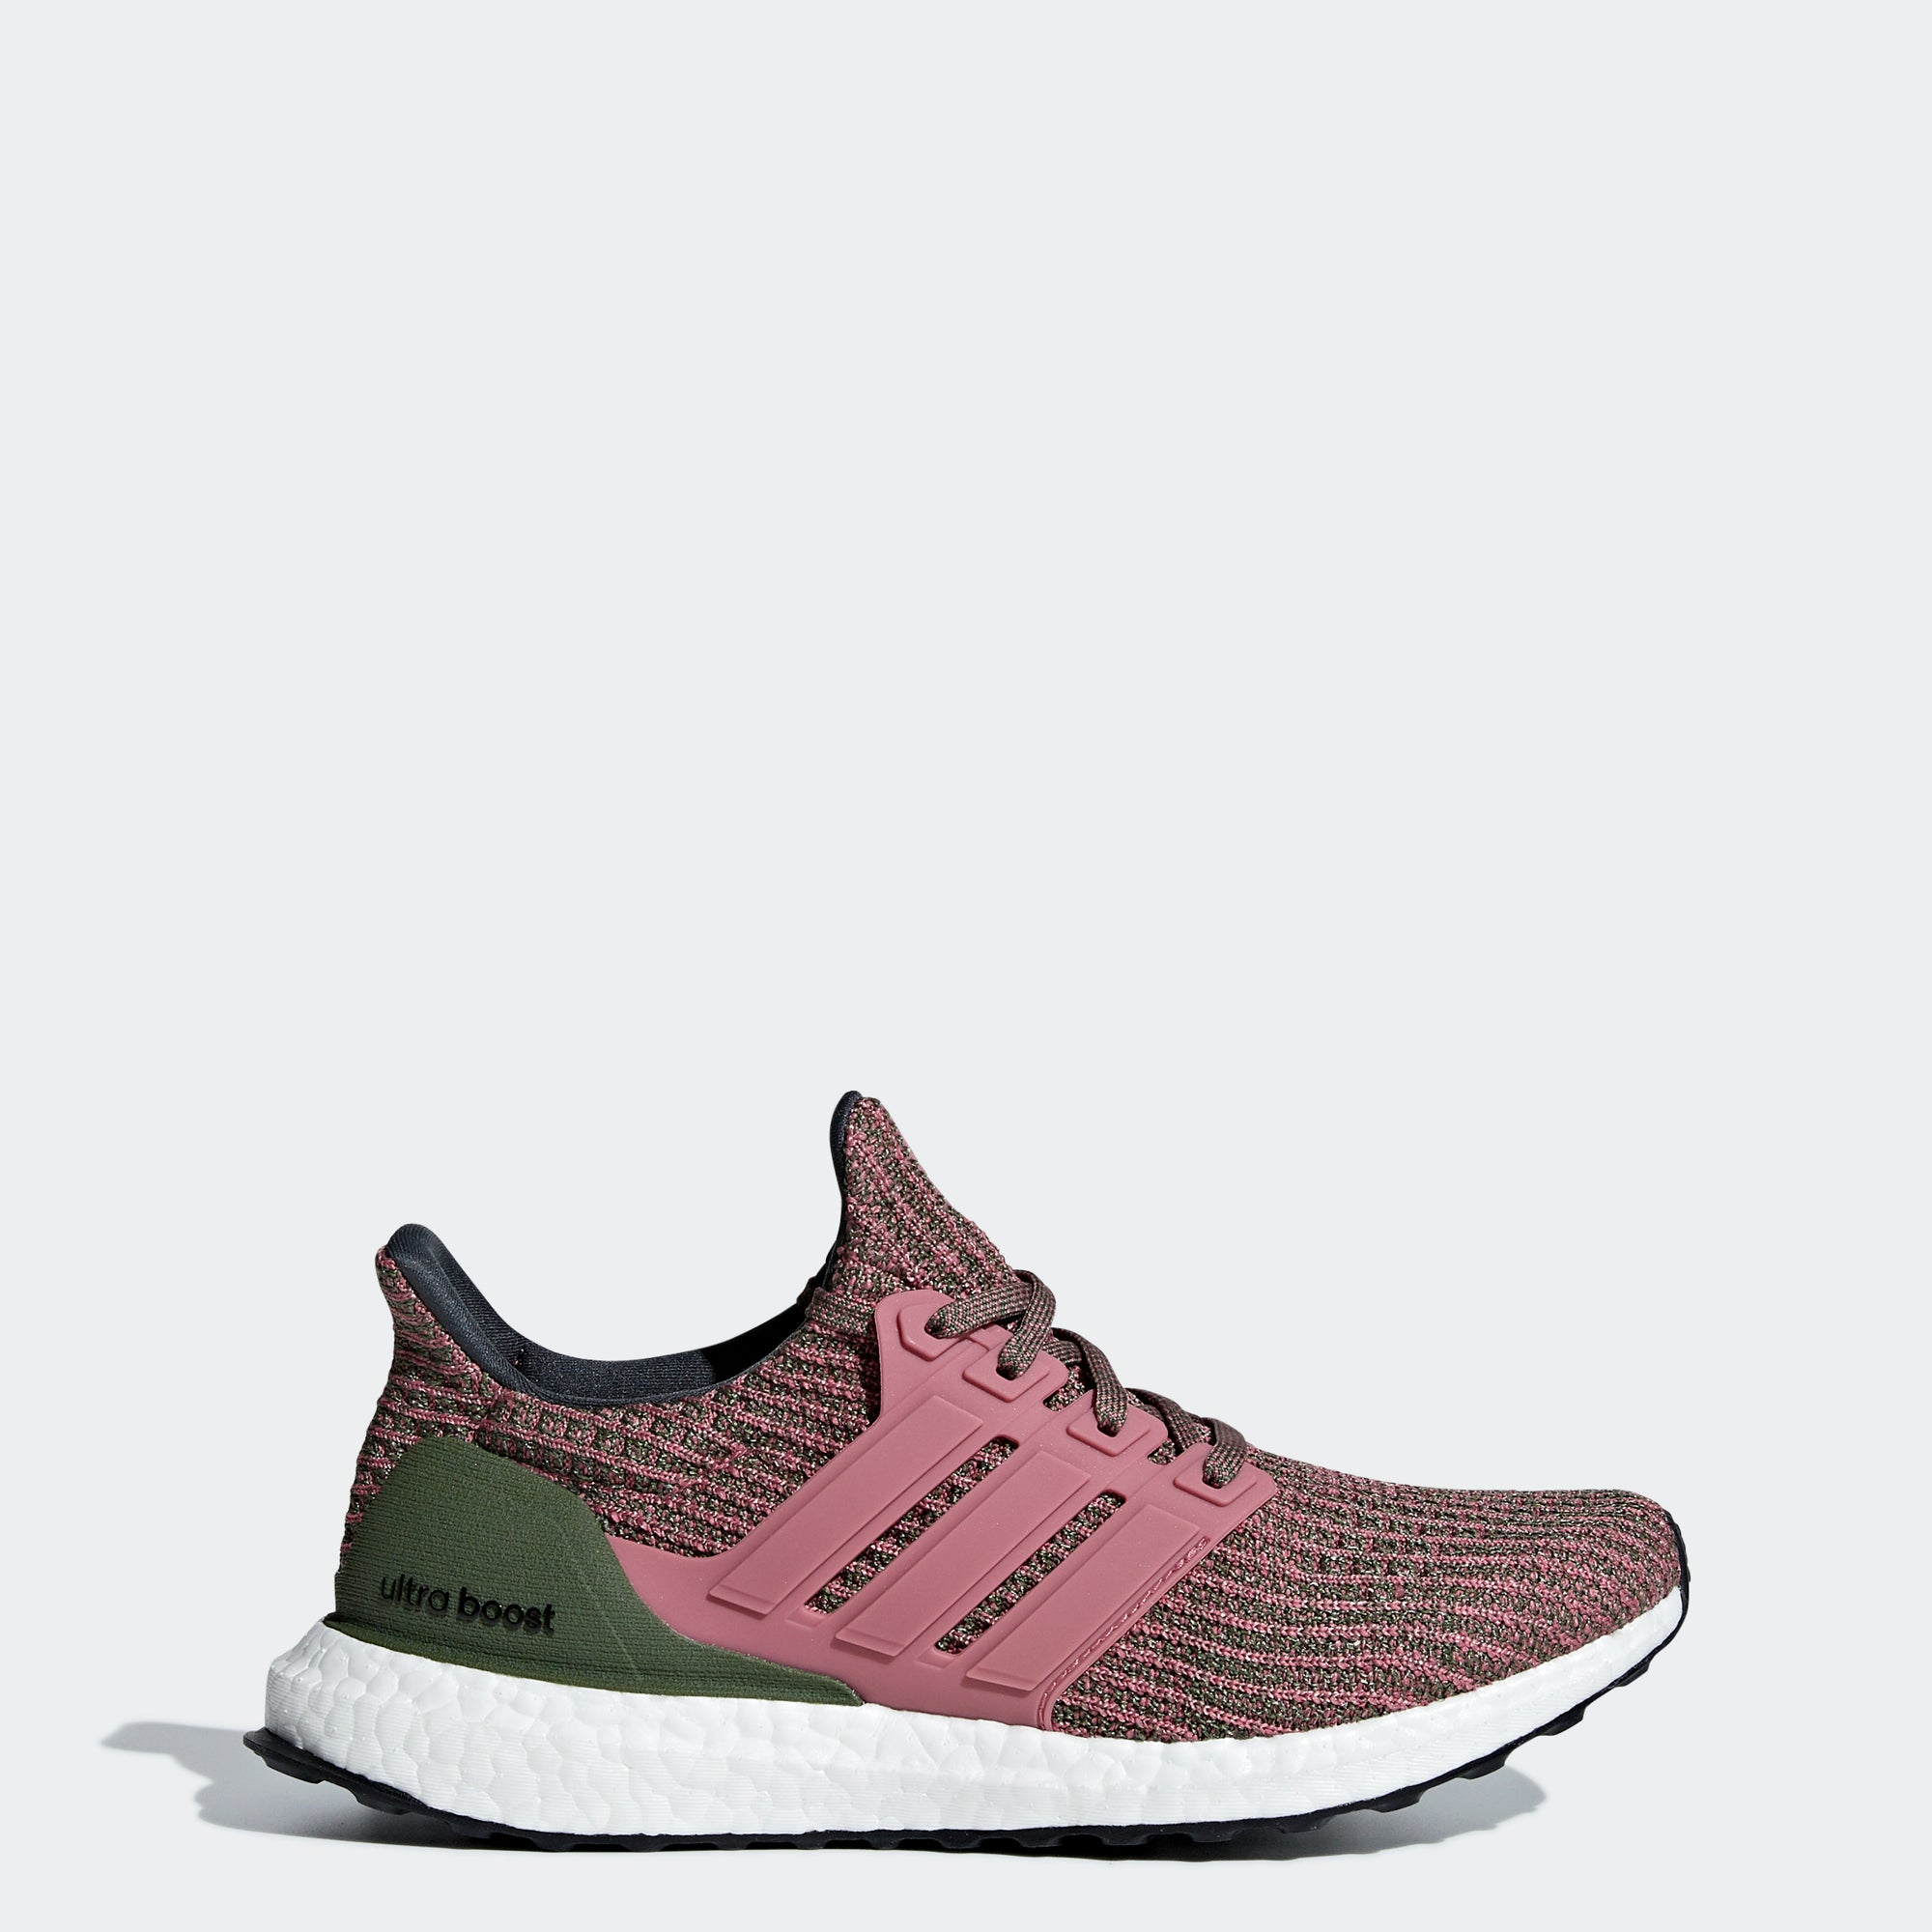 68377a19a9528 Women s adidas Running Ultraboost Shoes Trace Maroon